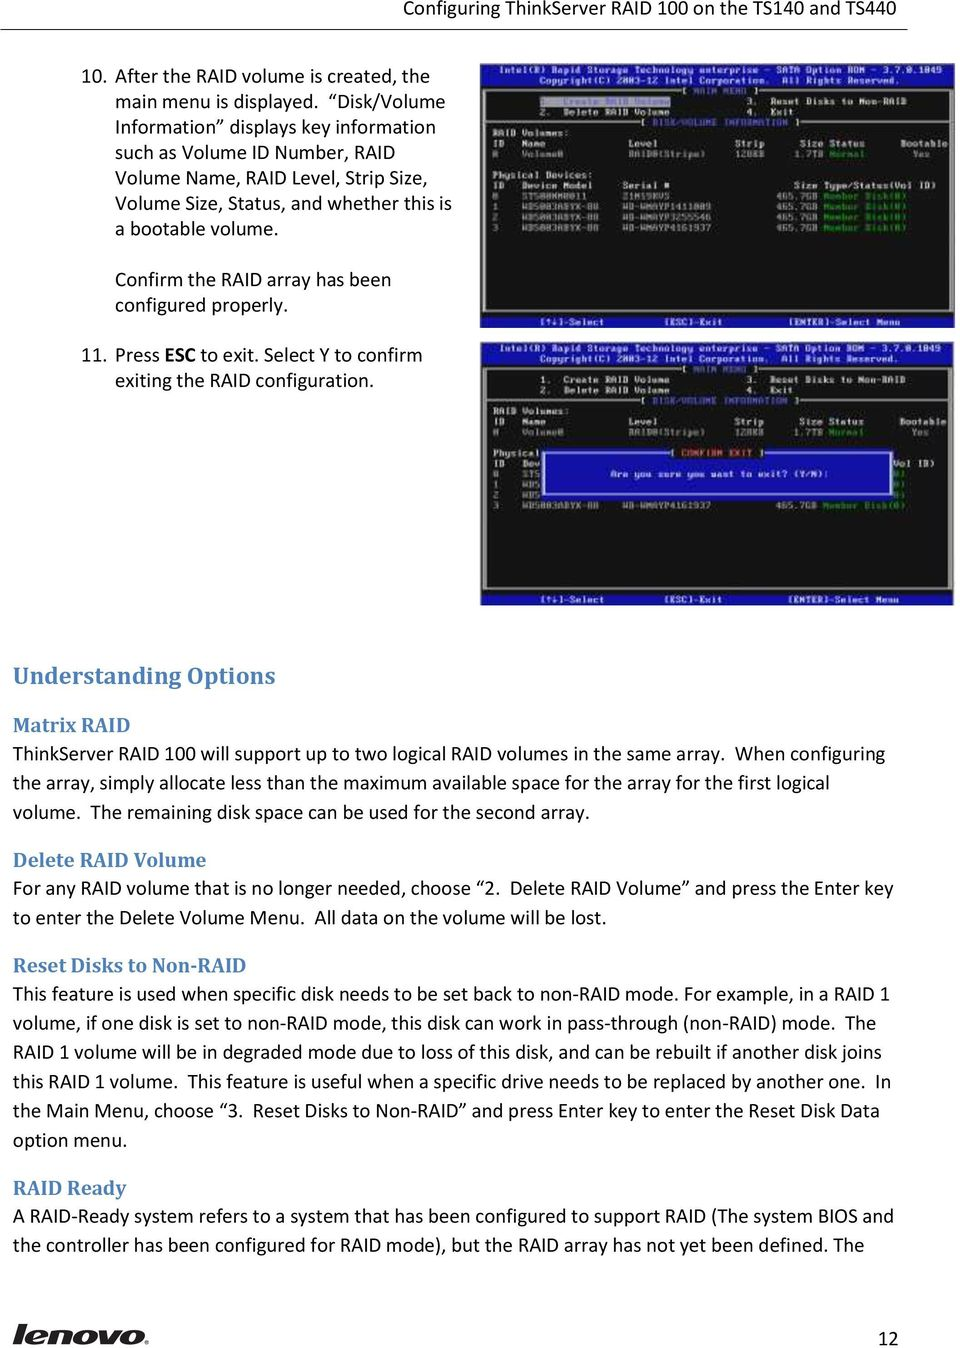 Configuring ThinkServer RAID 100 on the TS140 and TS440 - PDF